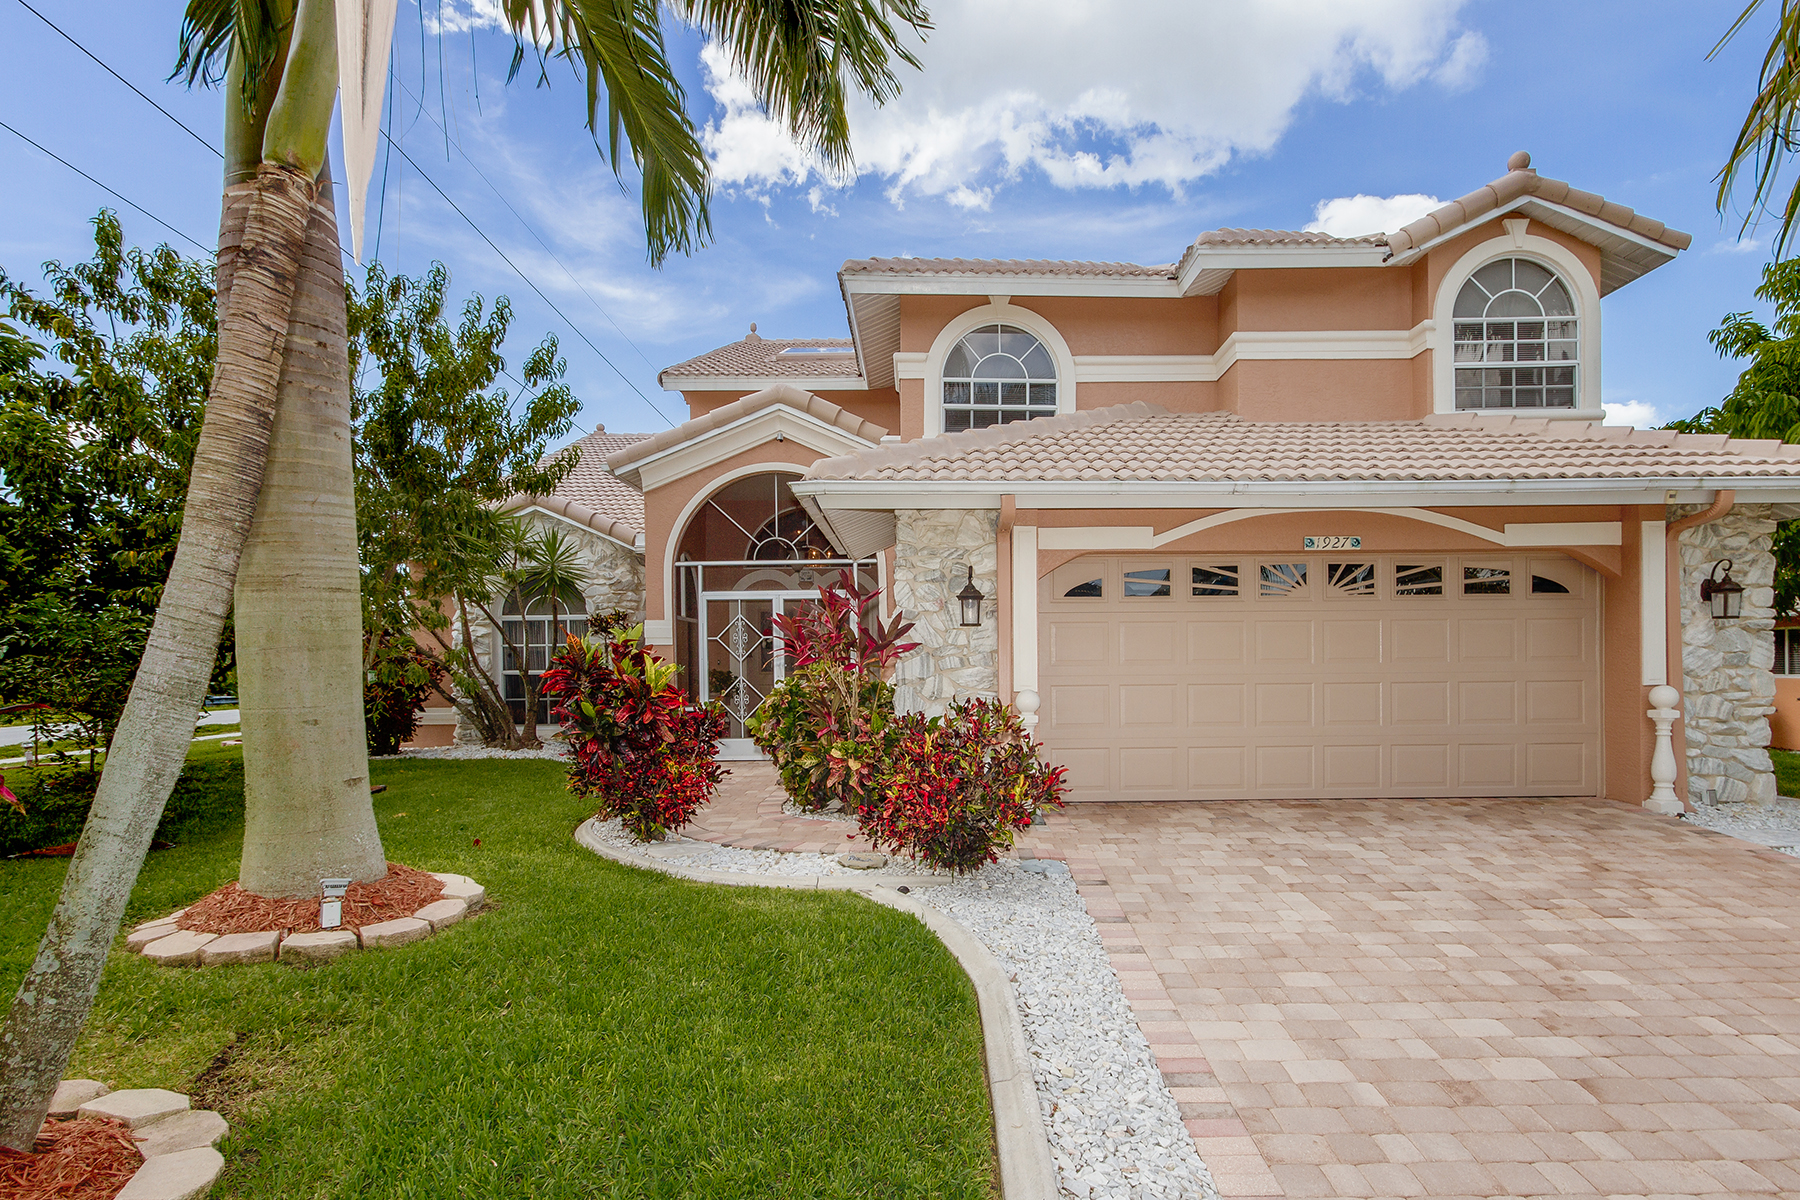 Single Family Home for Sale at CAPE CORAL 1927 SW 31st Cape Coral, Florida 33914 United States